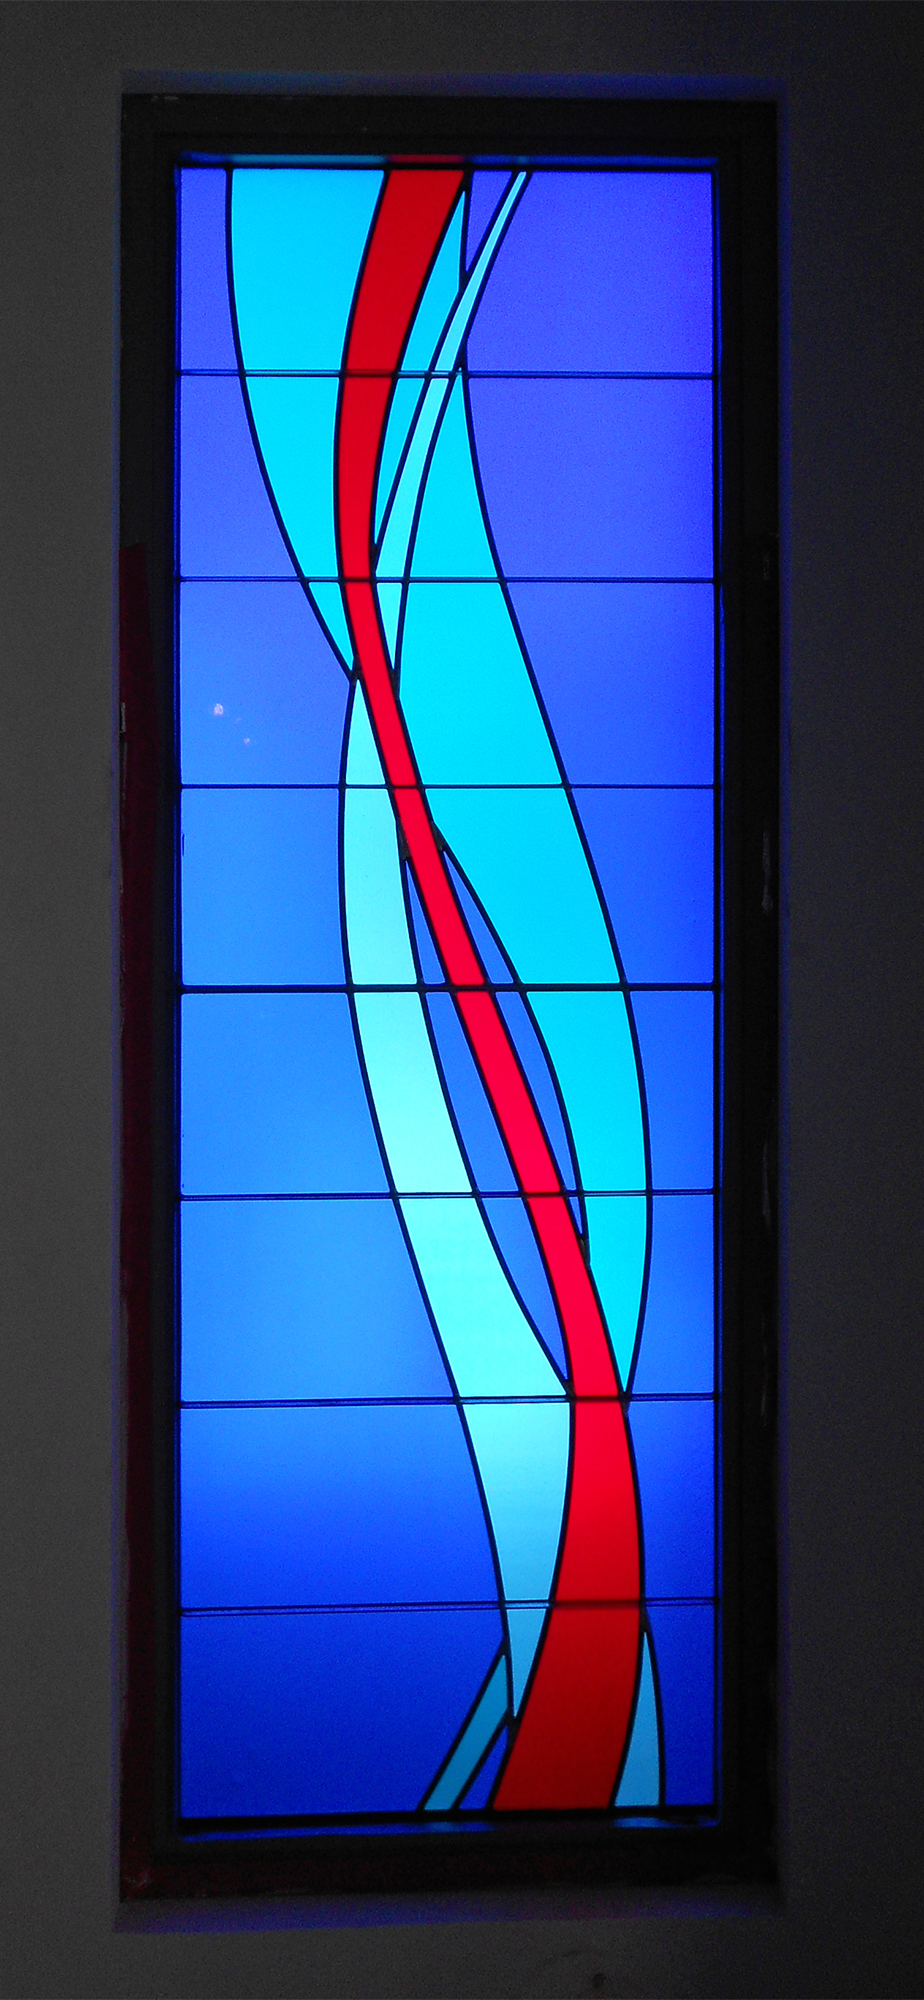 Laminated Glass, Our Lady Queen of Angels Church, Newport Beach, CA